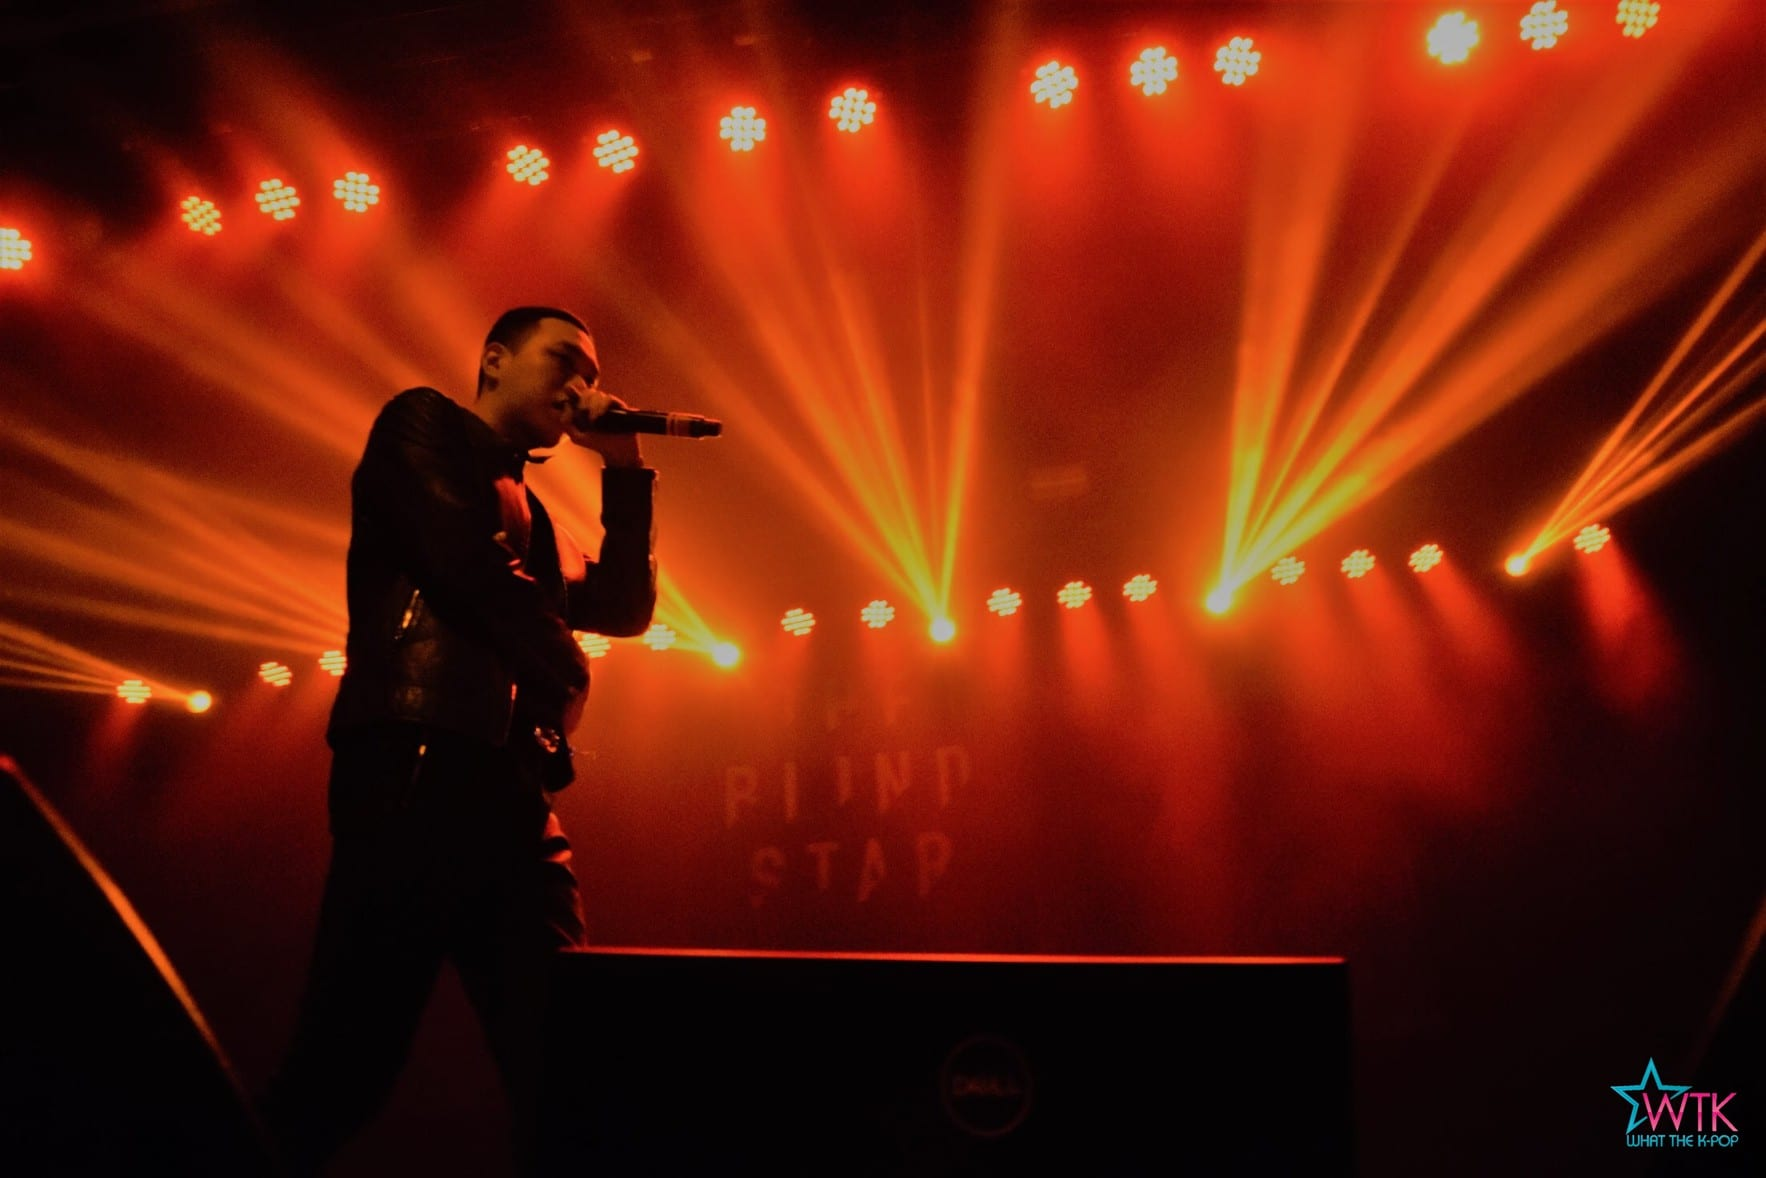 WTK REVIEW: BewhY Delivers Stunning Show During First U.S. Tour